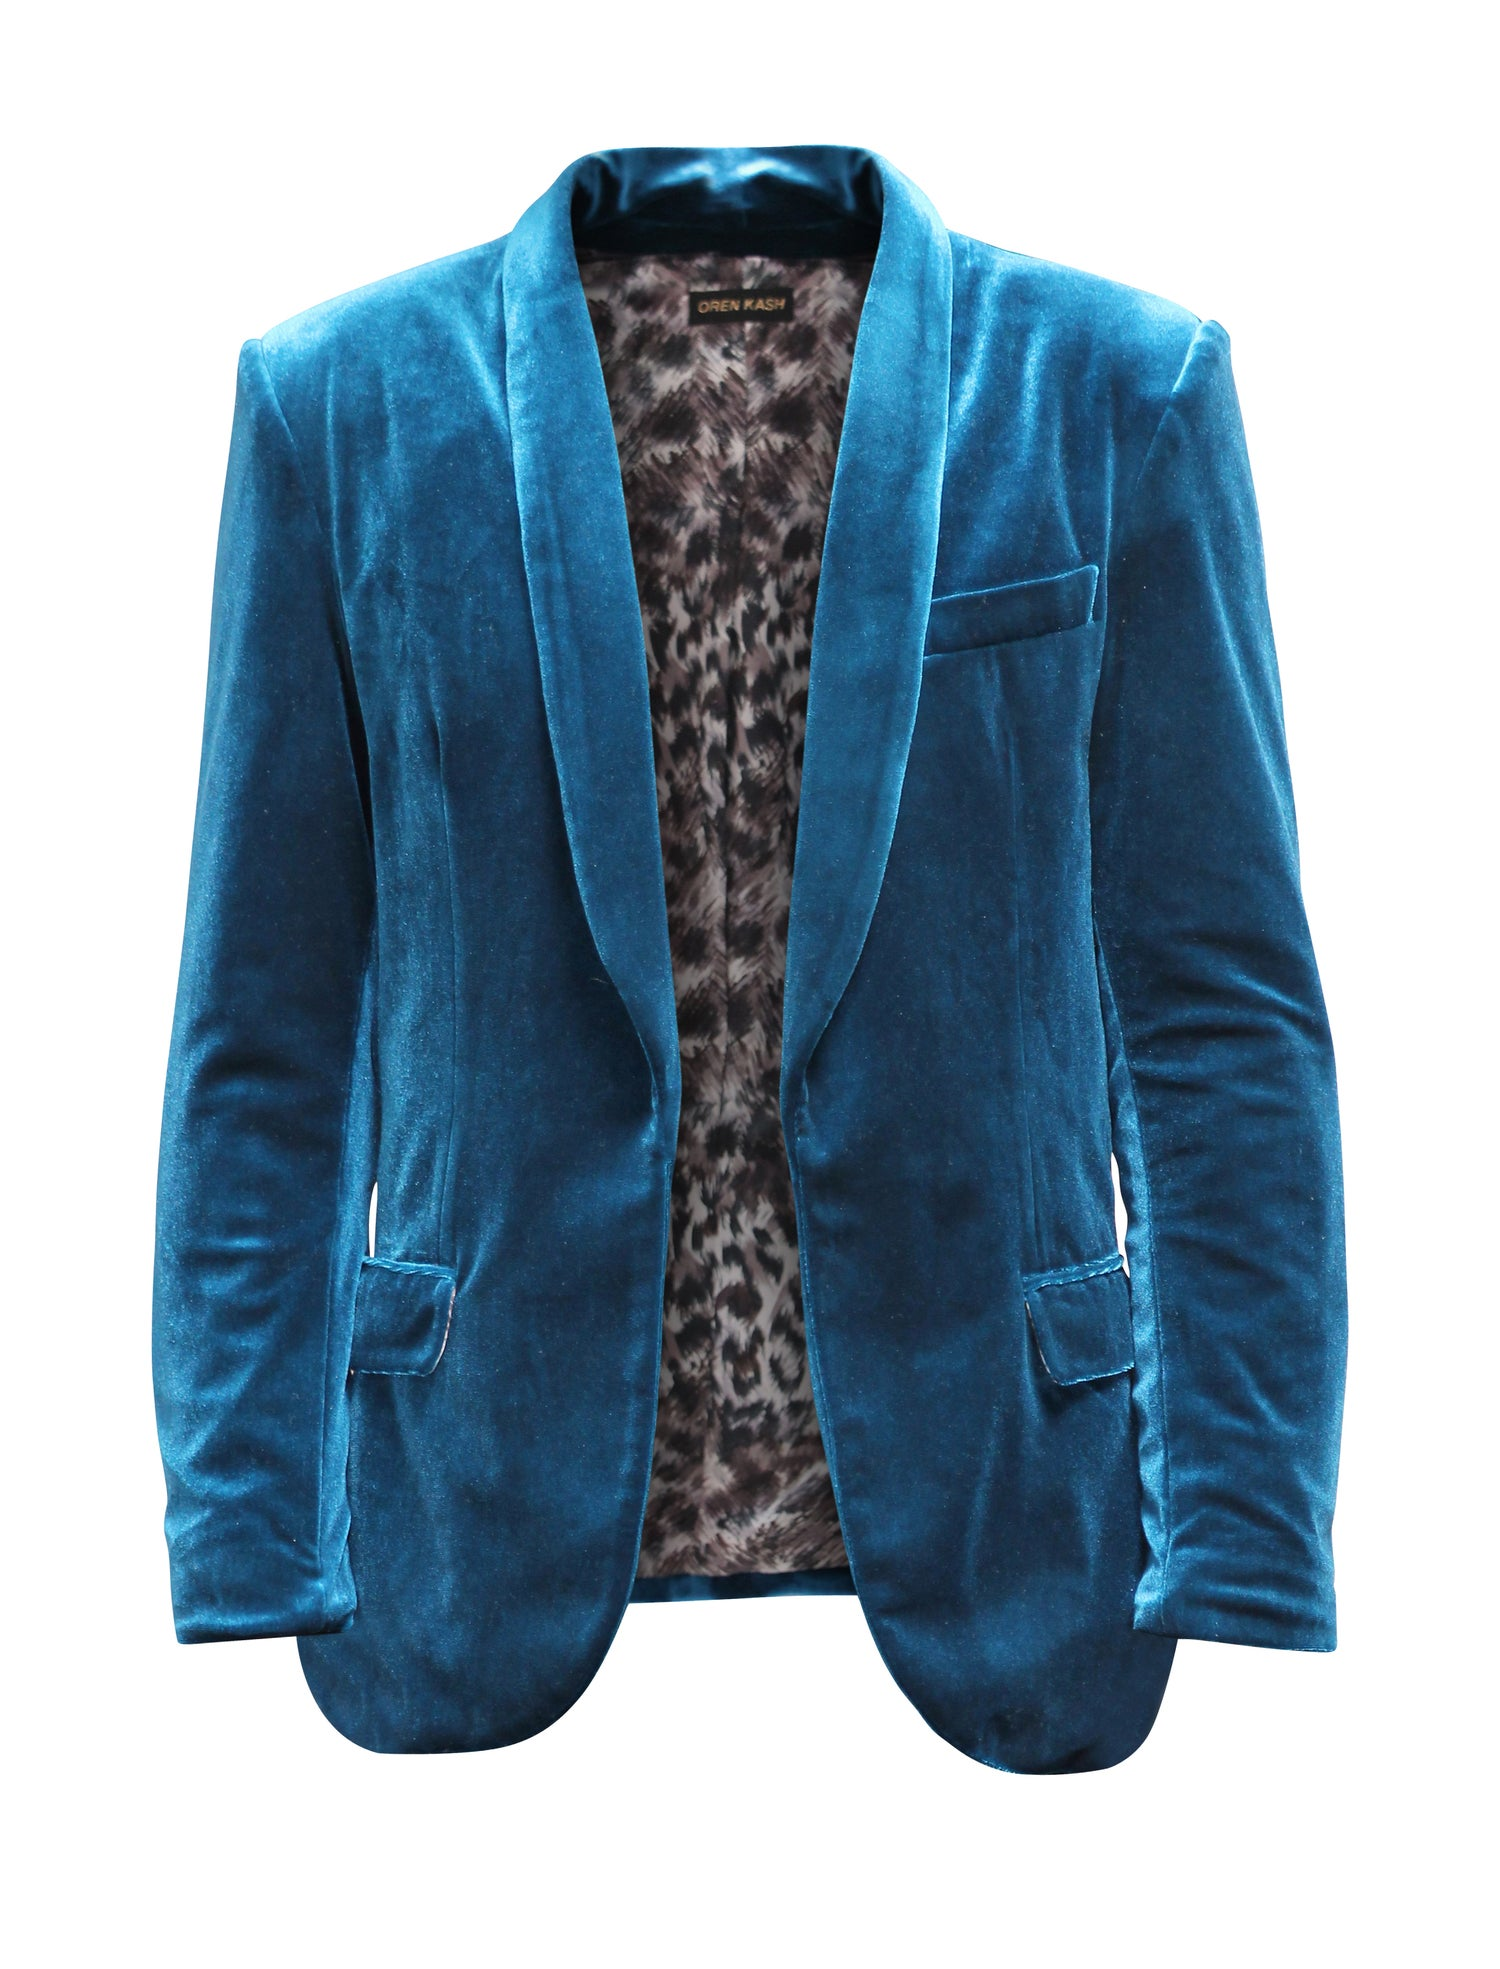 Image of VELVET SMOCKING JACKET